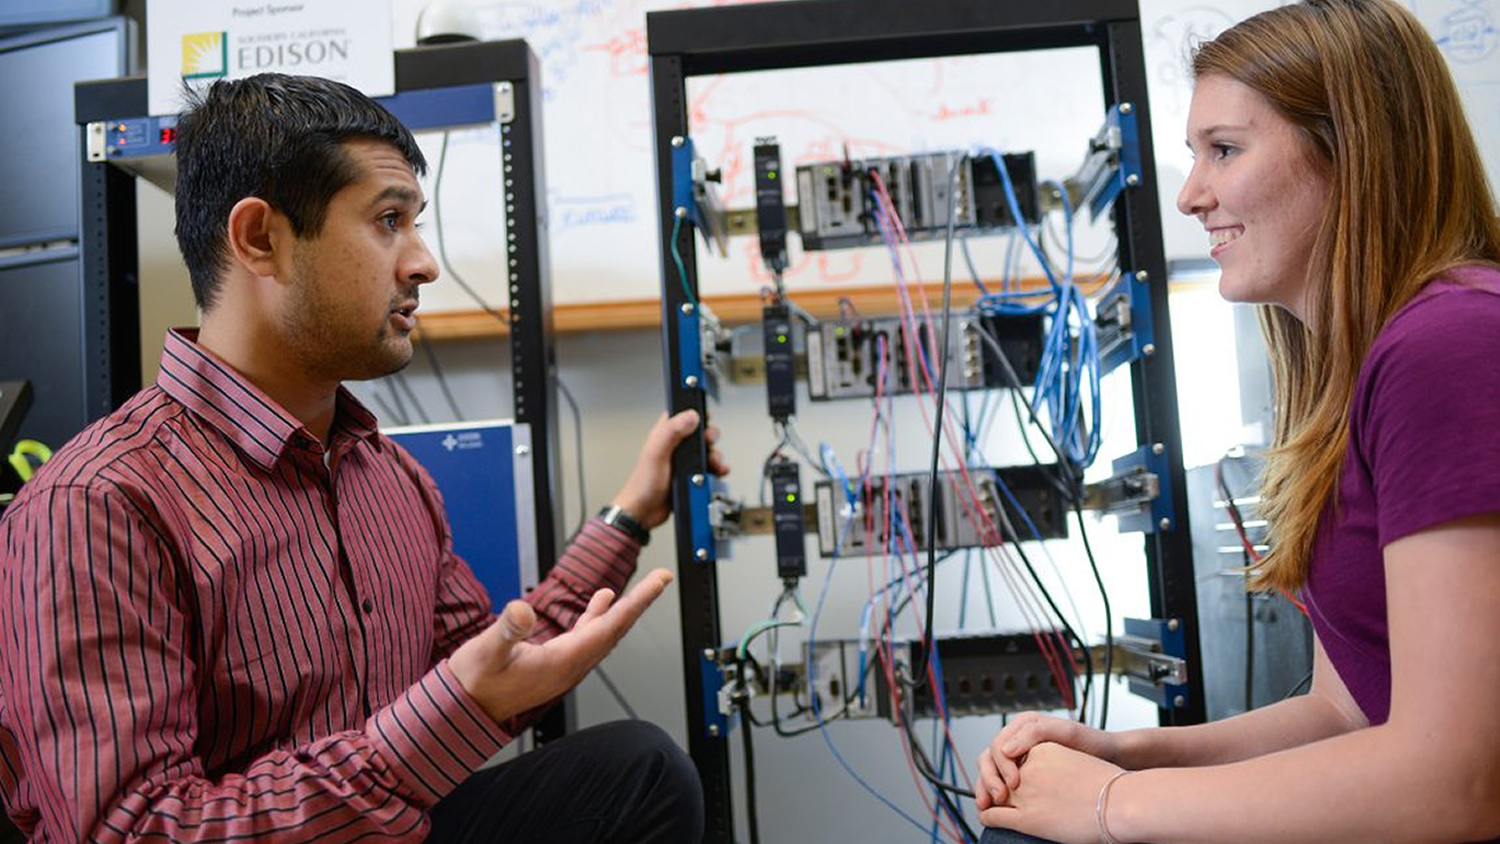 Dr. Aranya Chakrabortty (left) works with Kristrn Garcia, a graduate student in Electrical Engineering. Image credit: FREEDM Systems Center